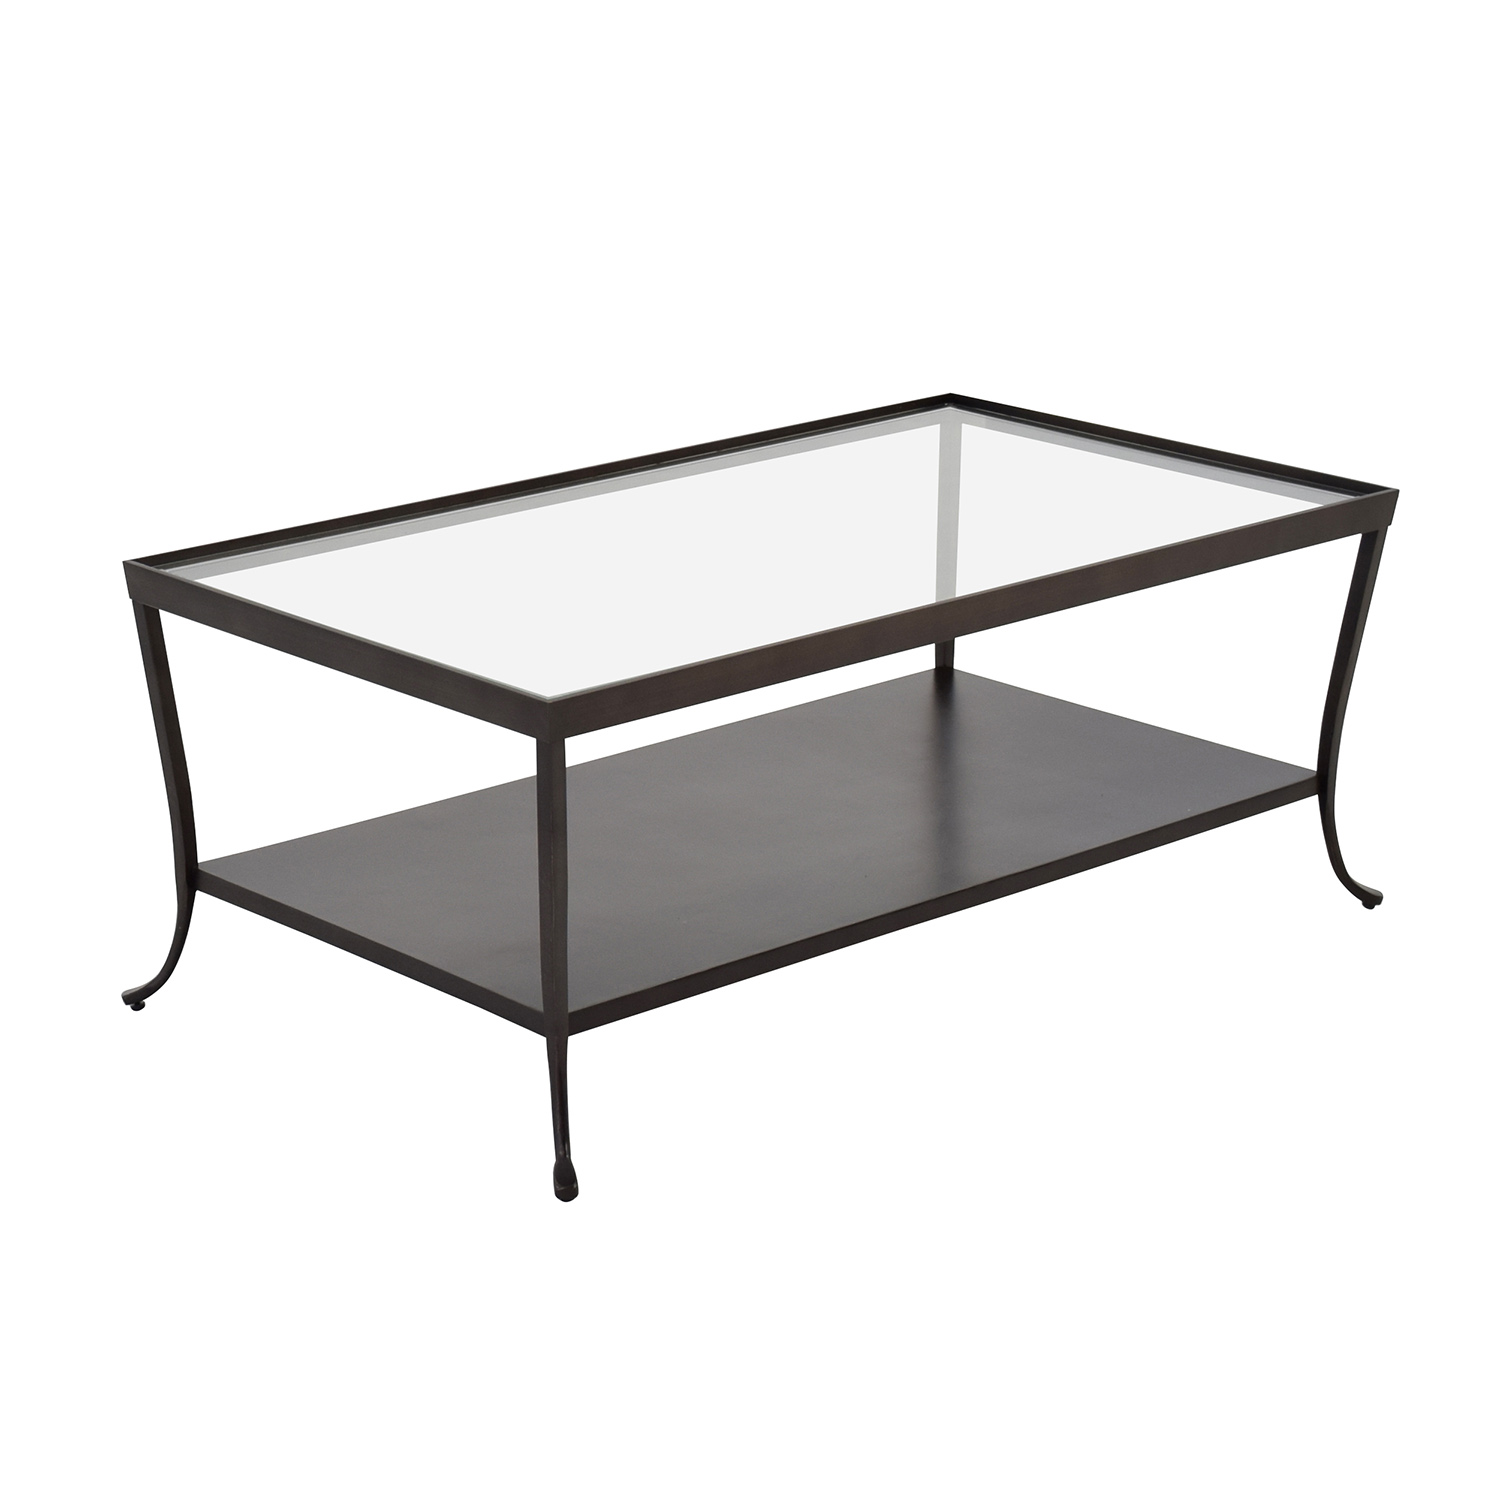 84 off metal base with glass top coffee table tables Metal glass top coffee table